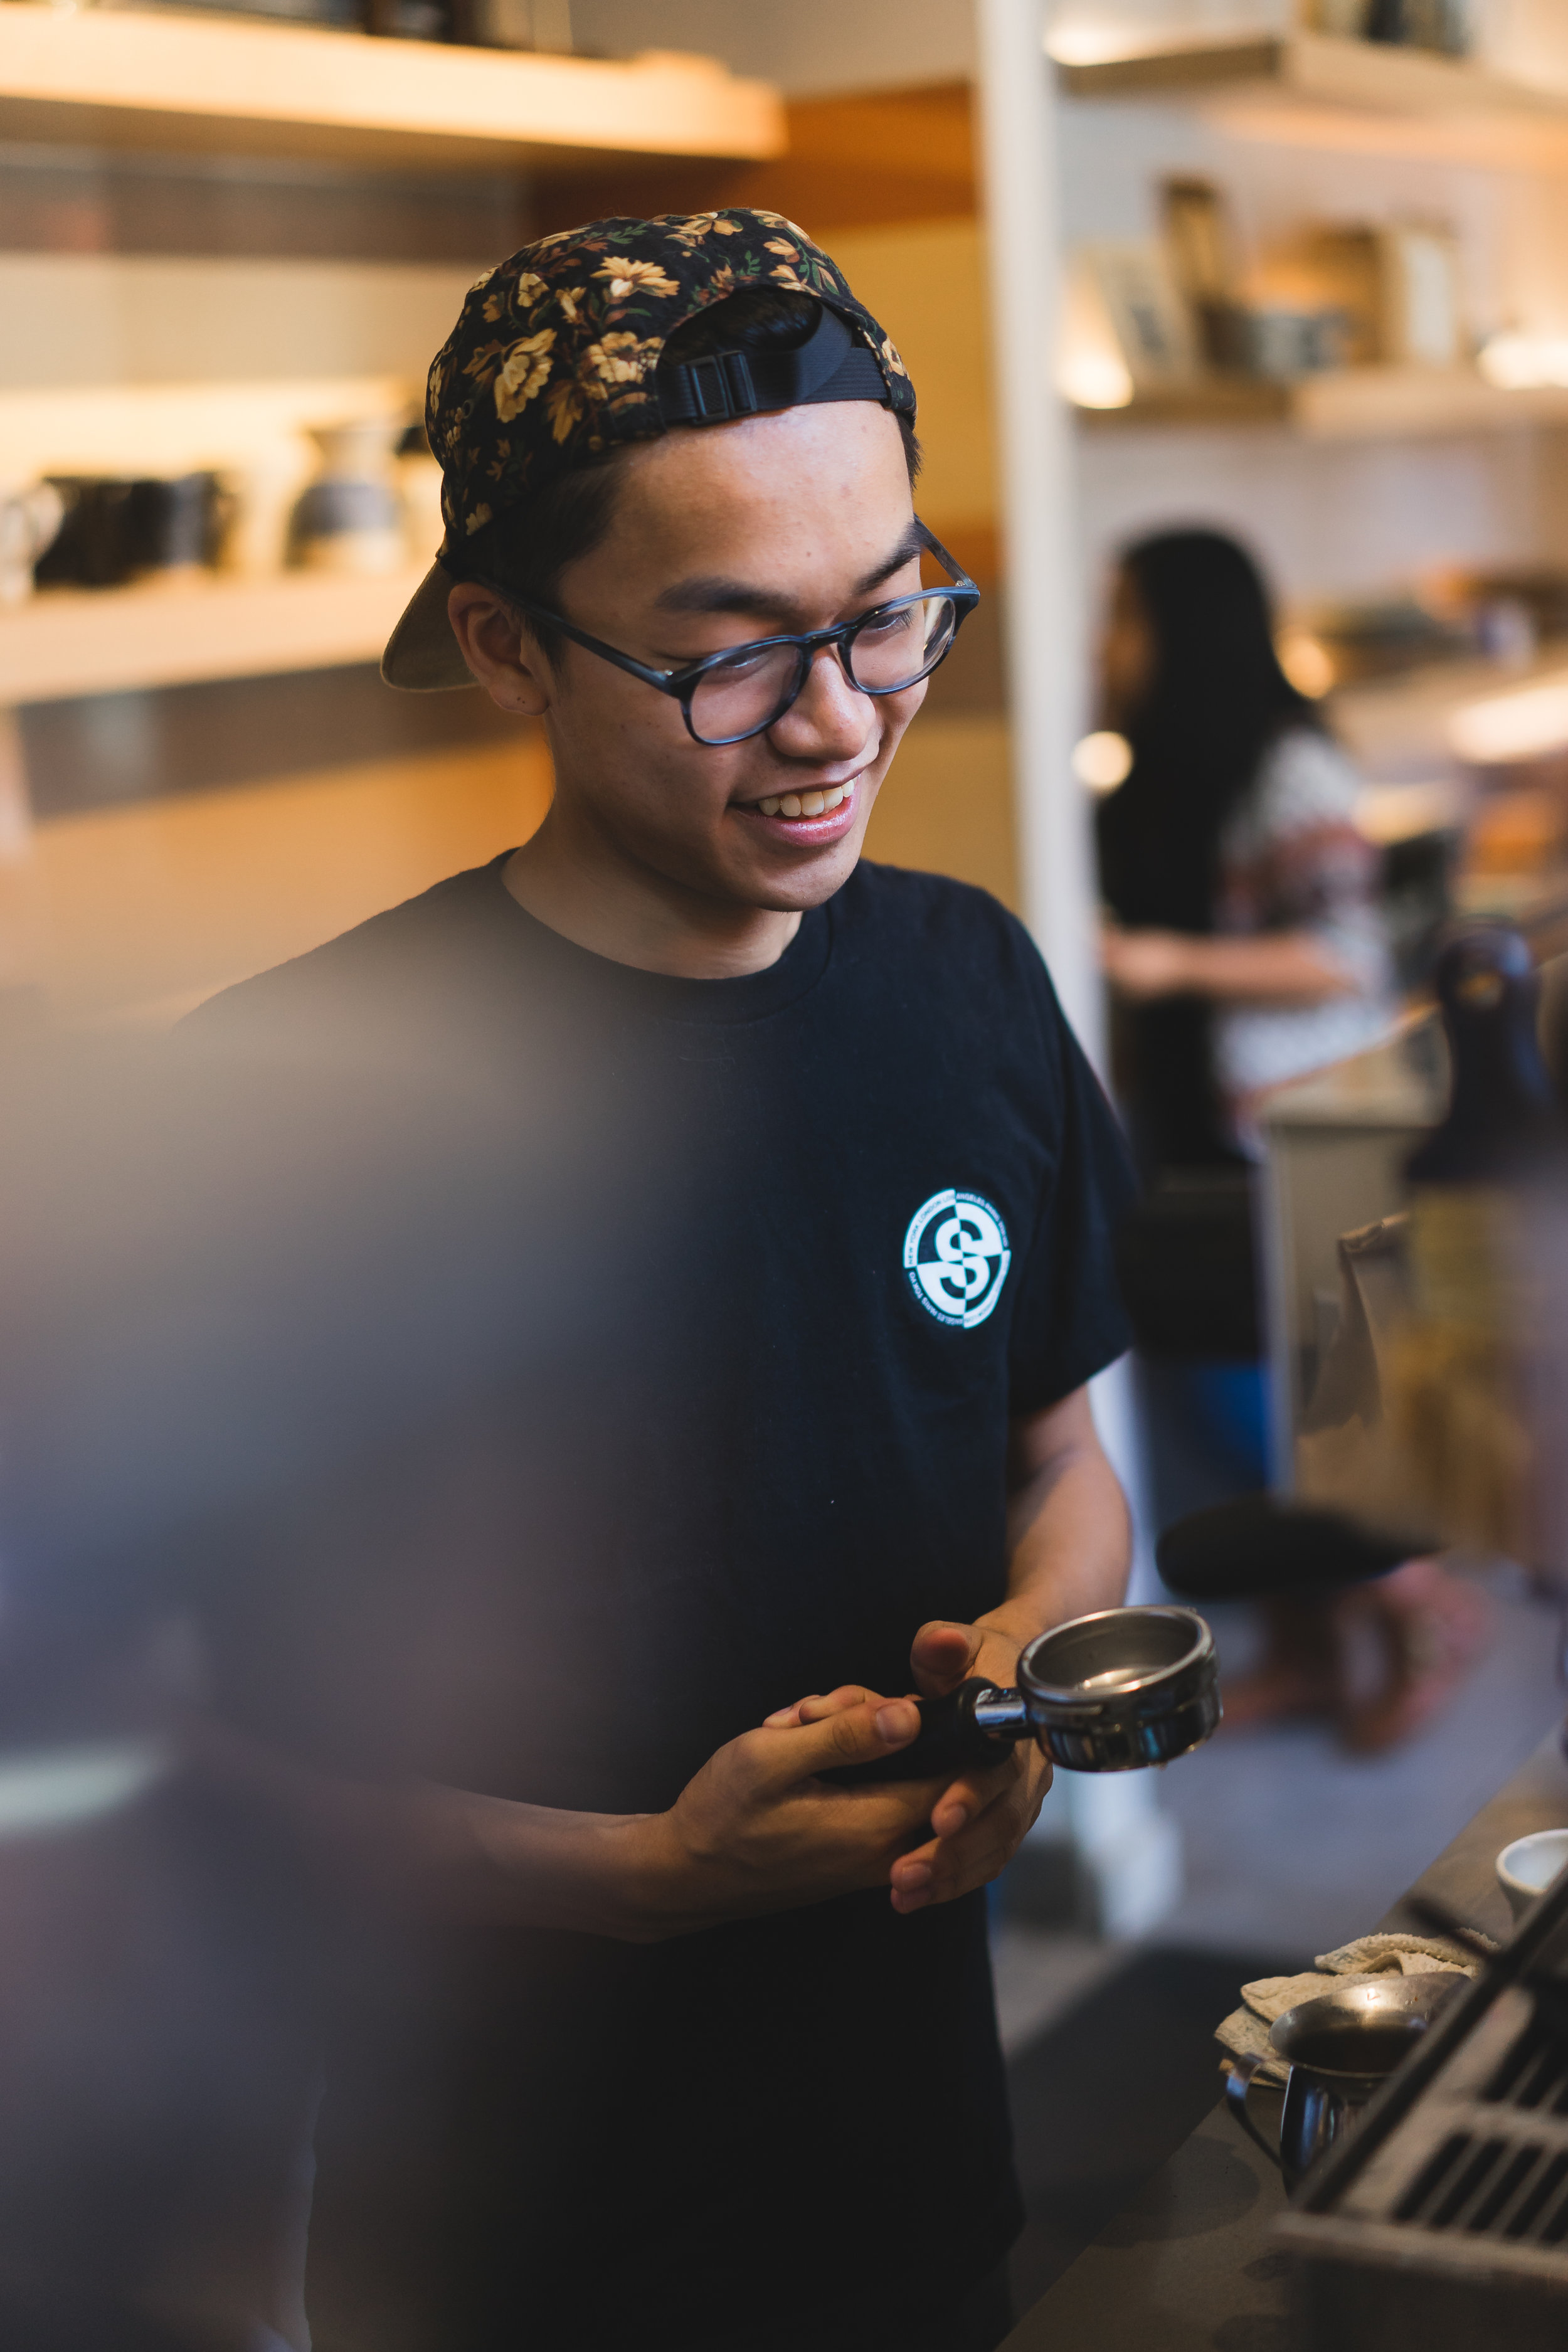 sues-gallery-cafe-baristas-0004.jpg